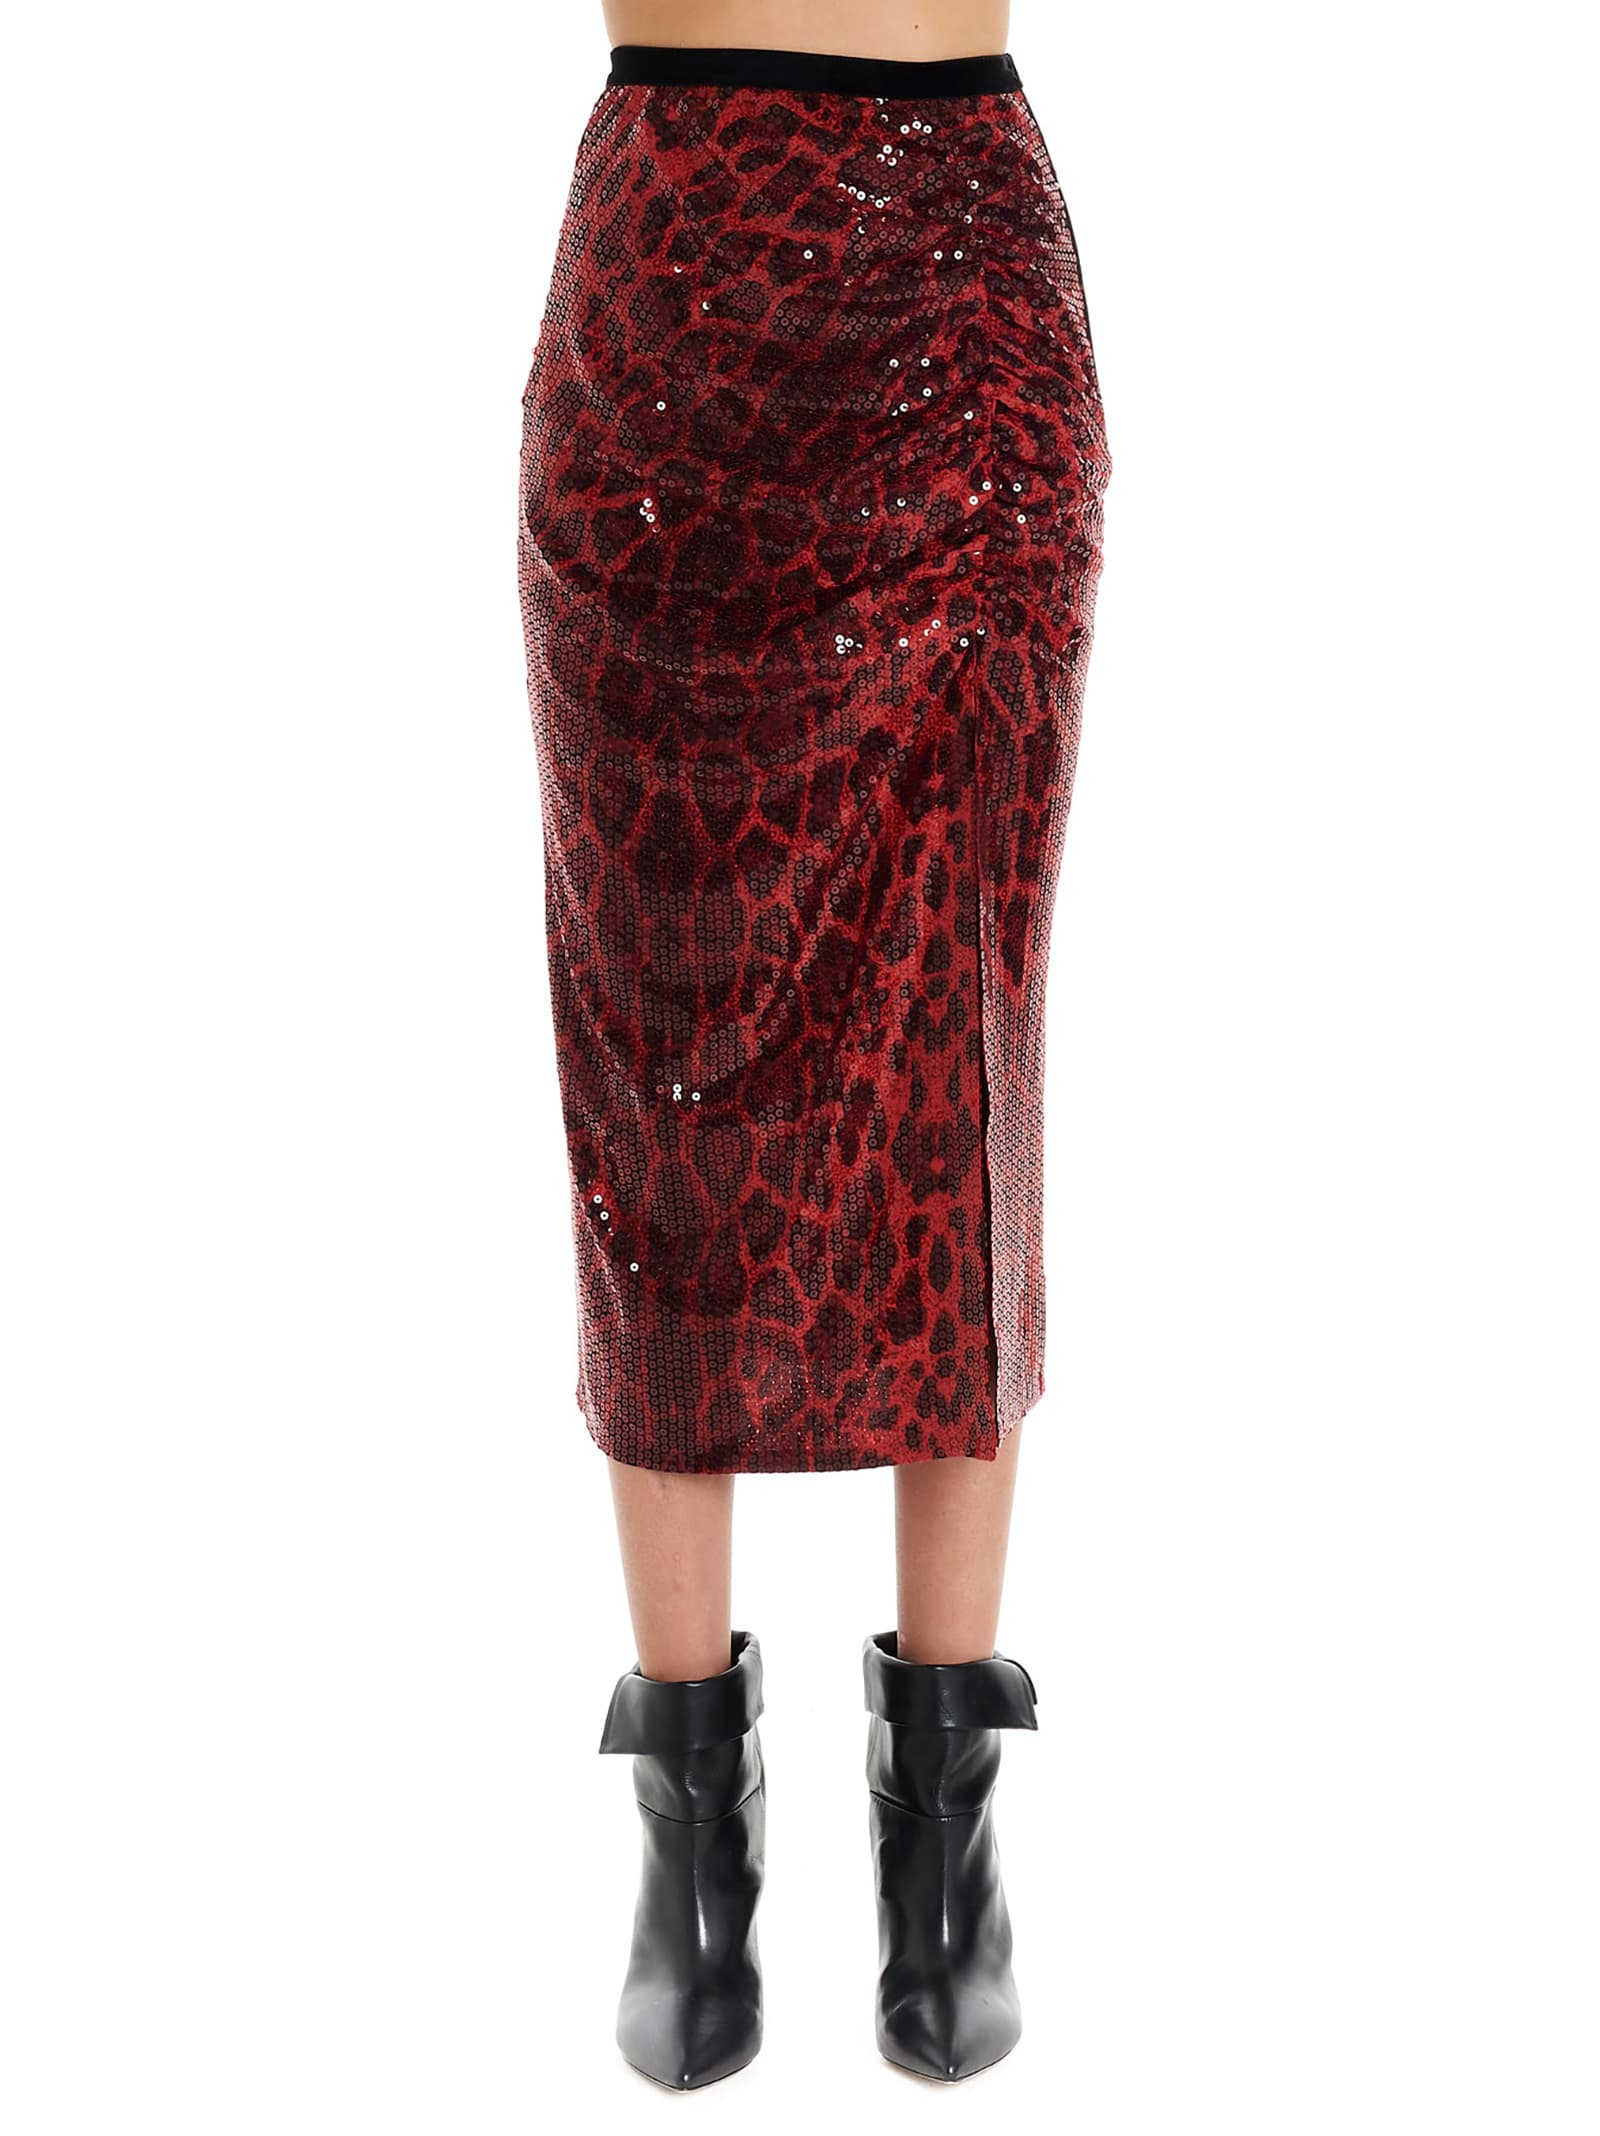 In The Mood For Love ada Dress